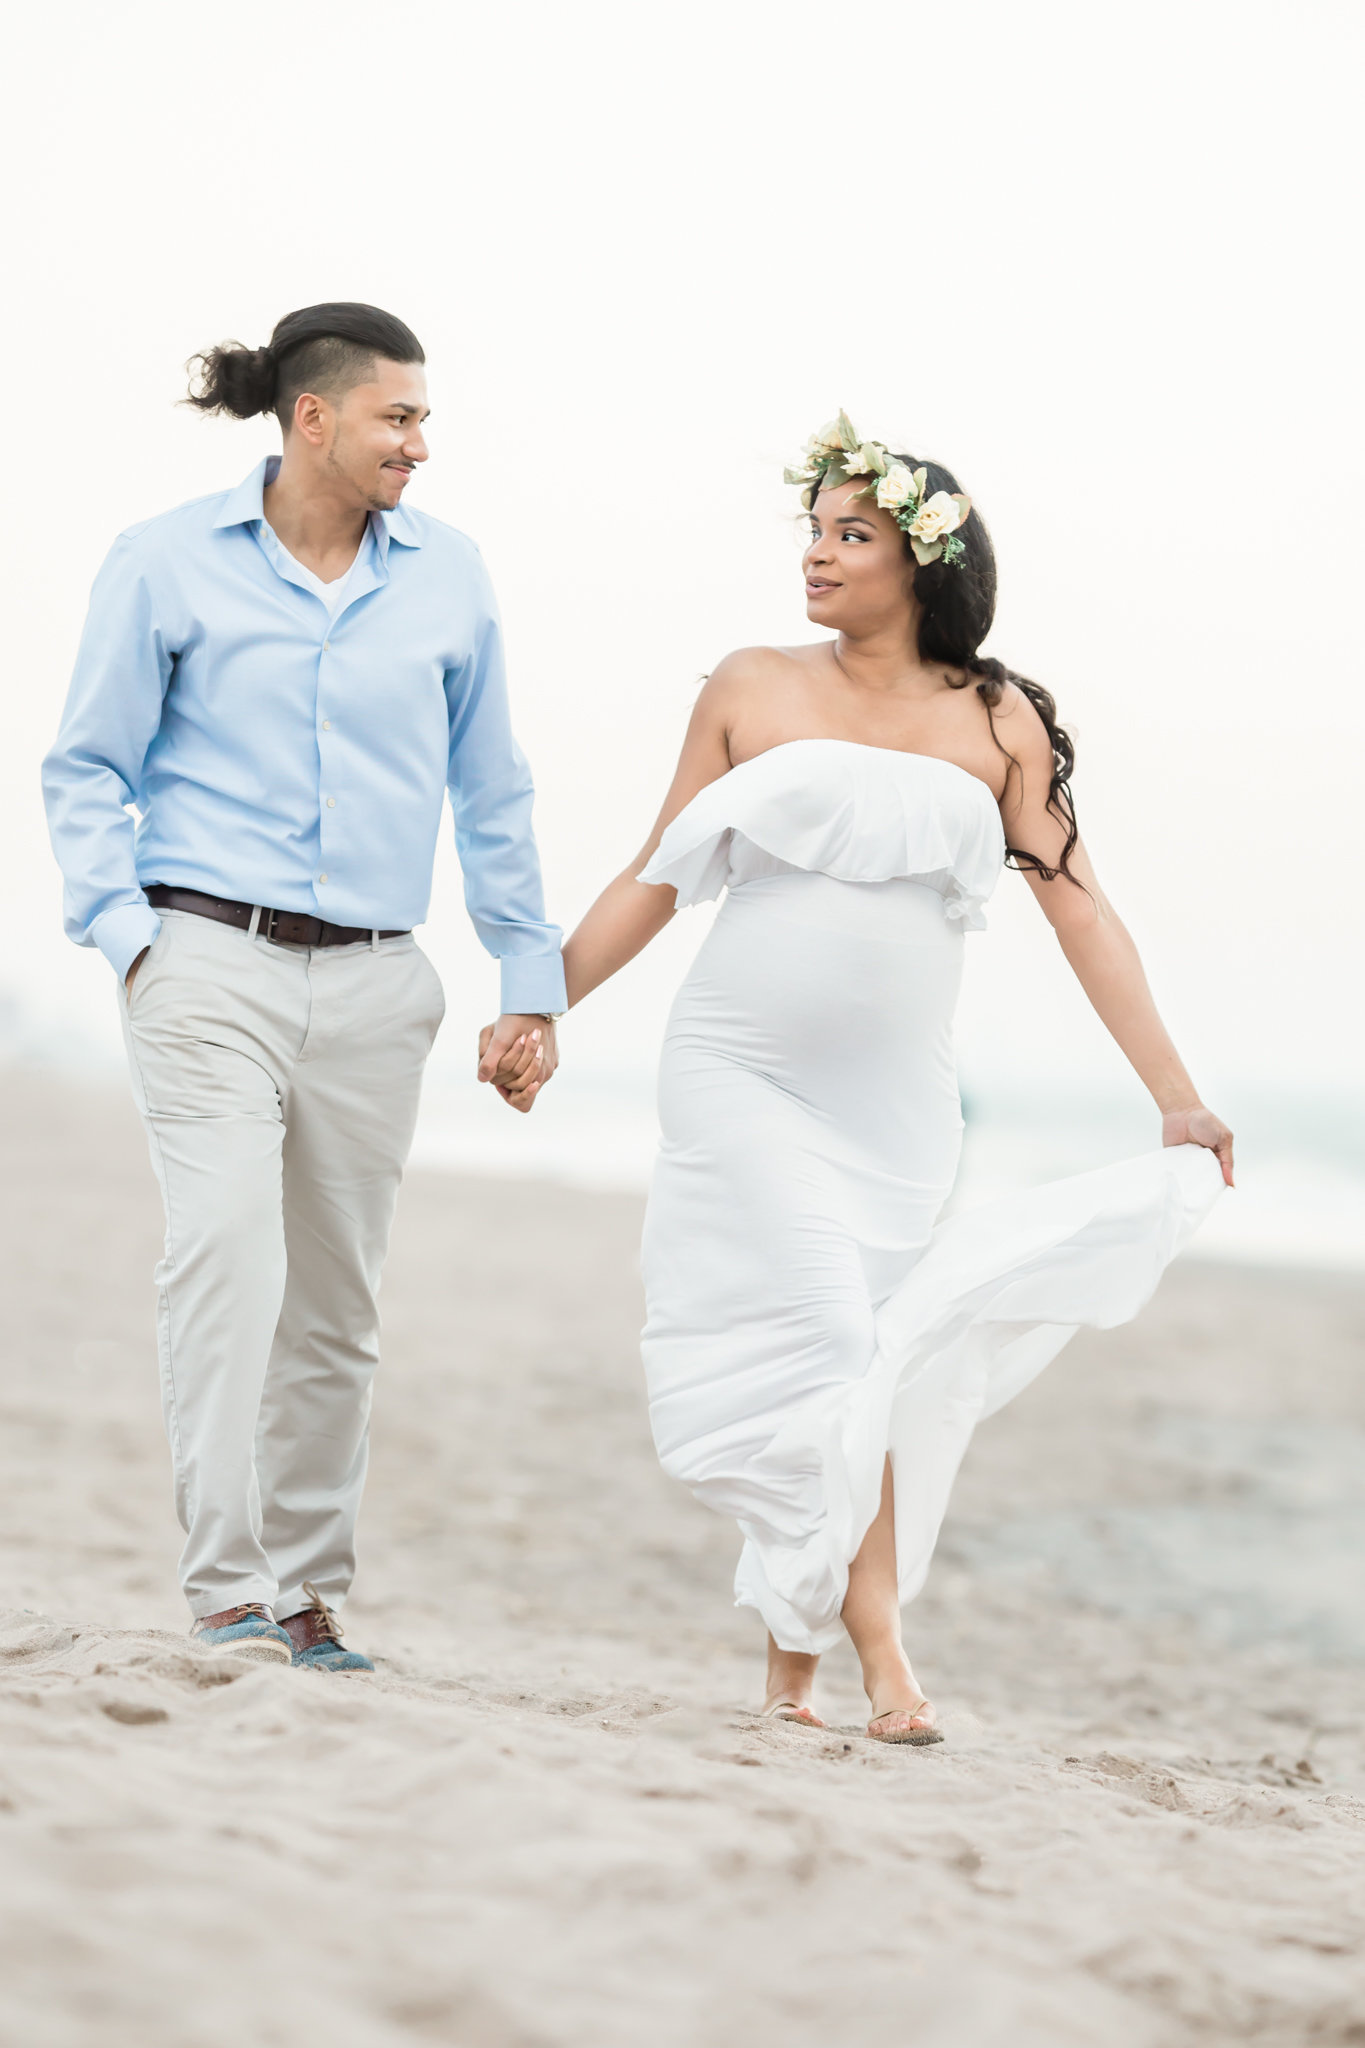 Dreamcatcher Rose Studios - maternity - coney island ny - husband and wife walk along beach